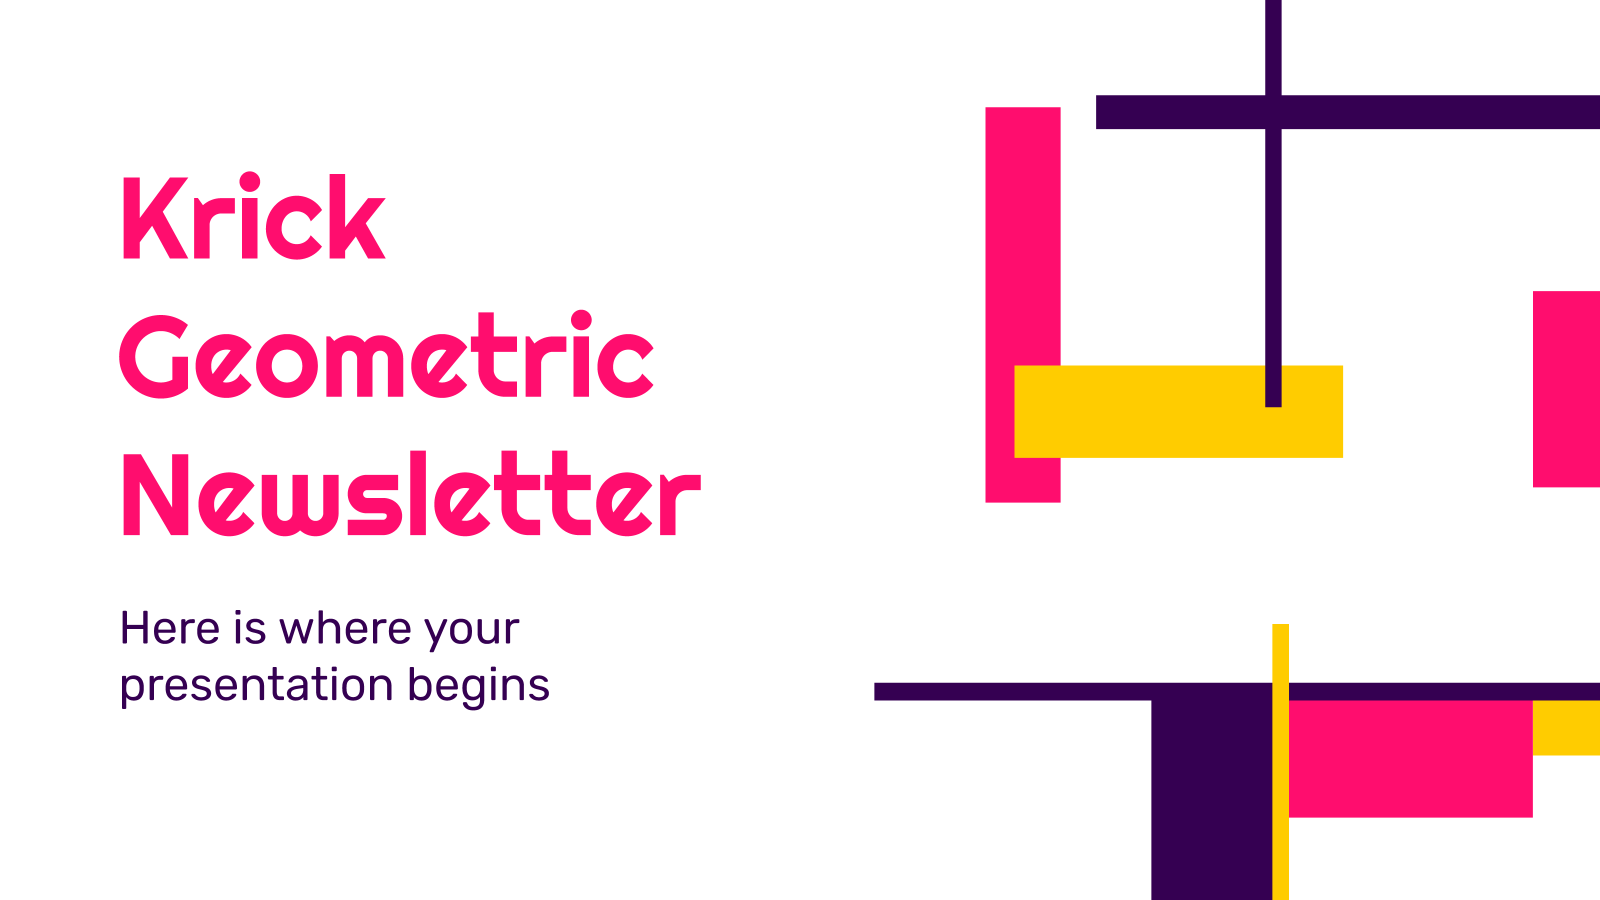 Krick Geometric Newsletter presentation template